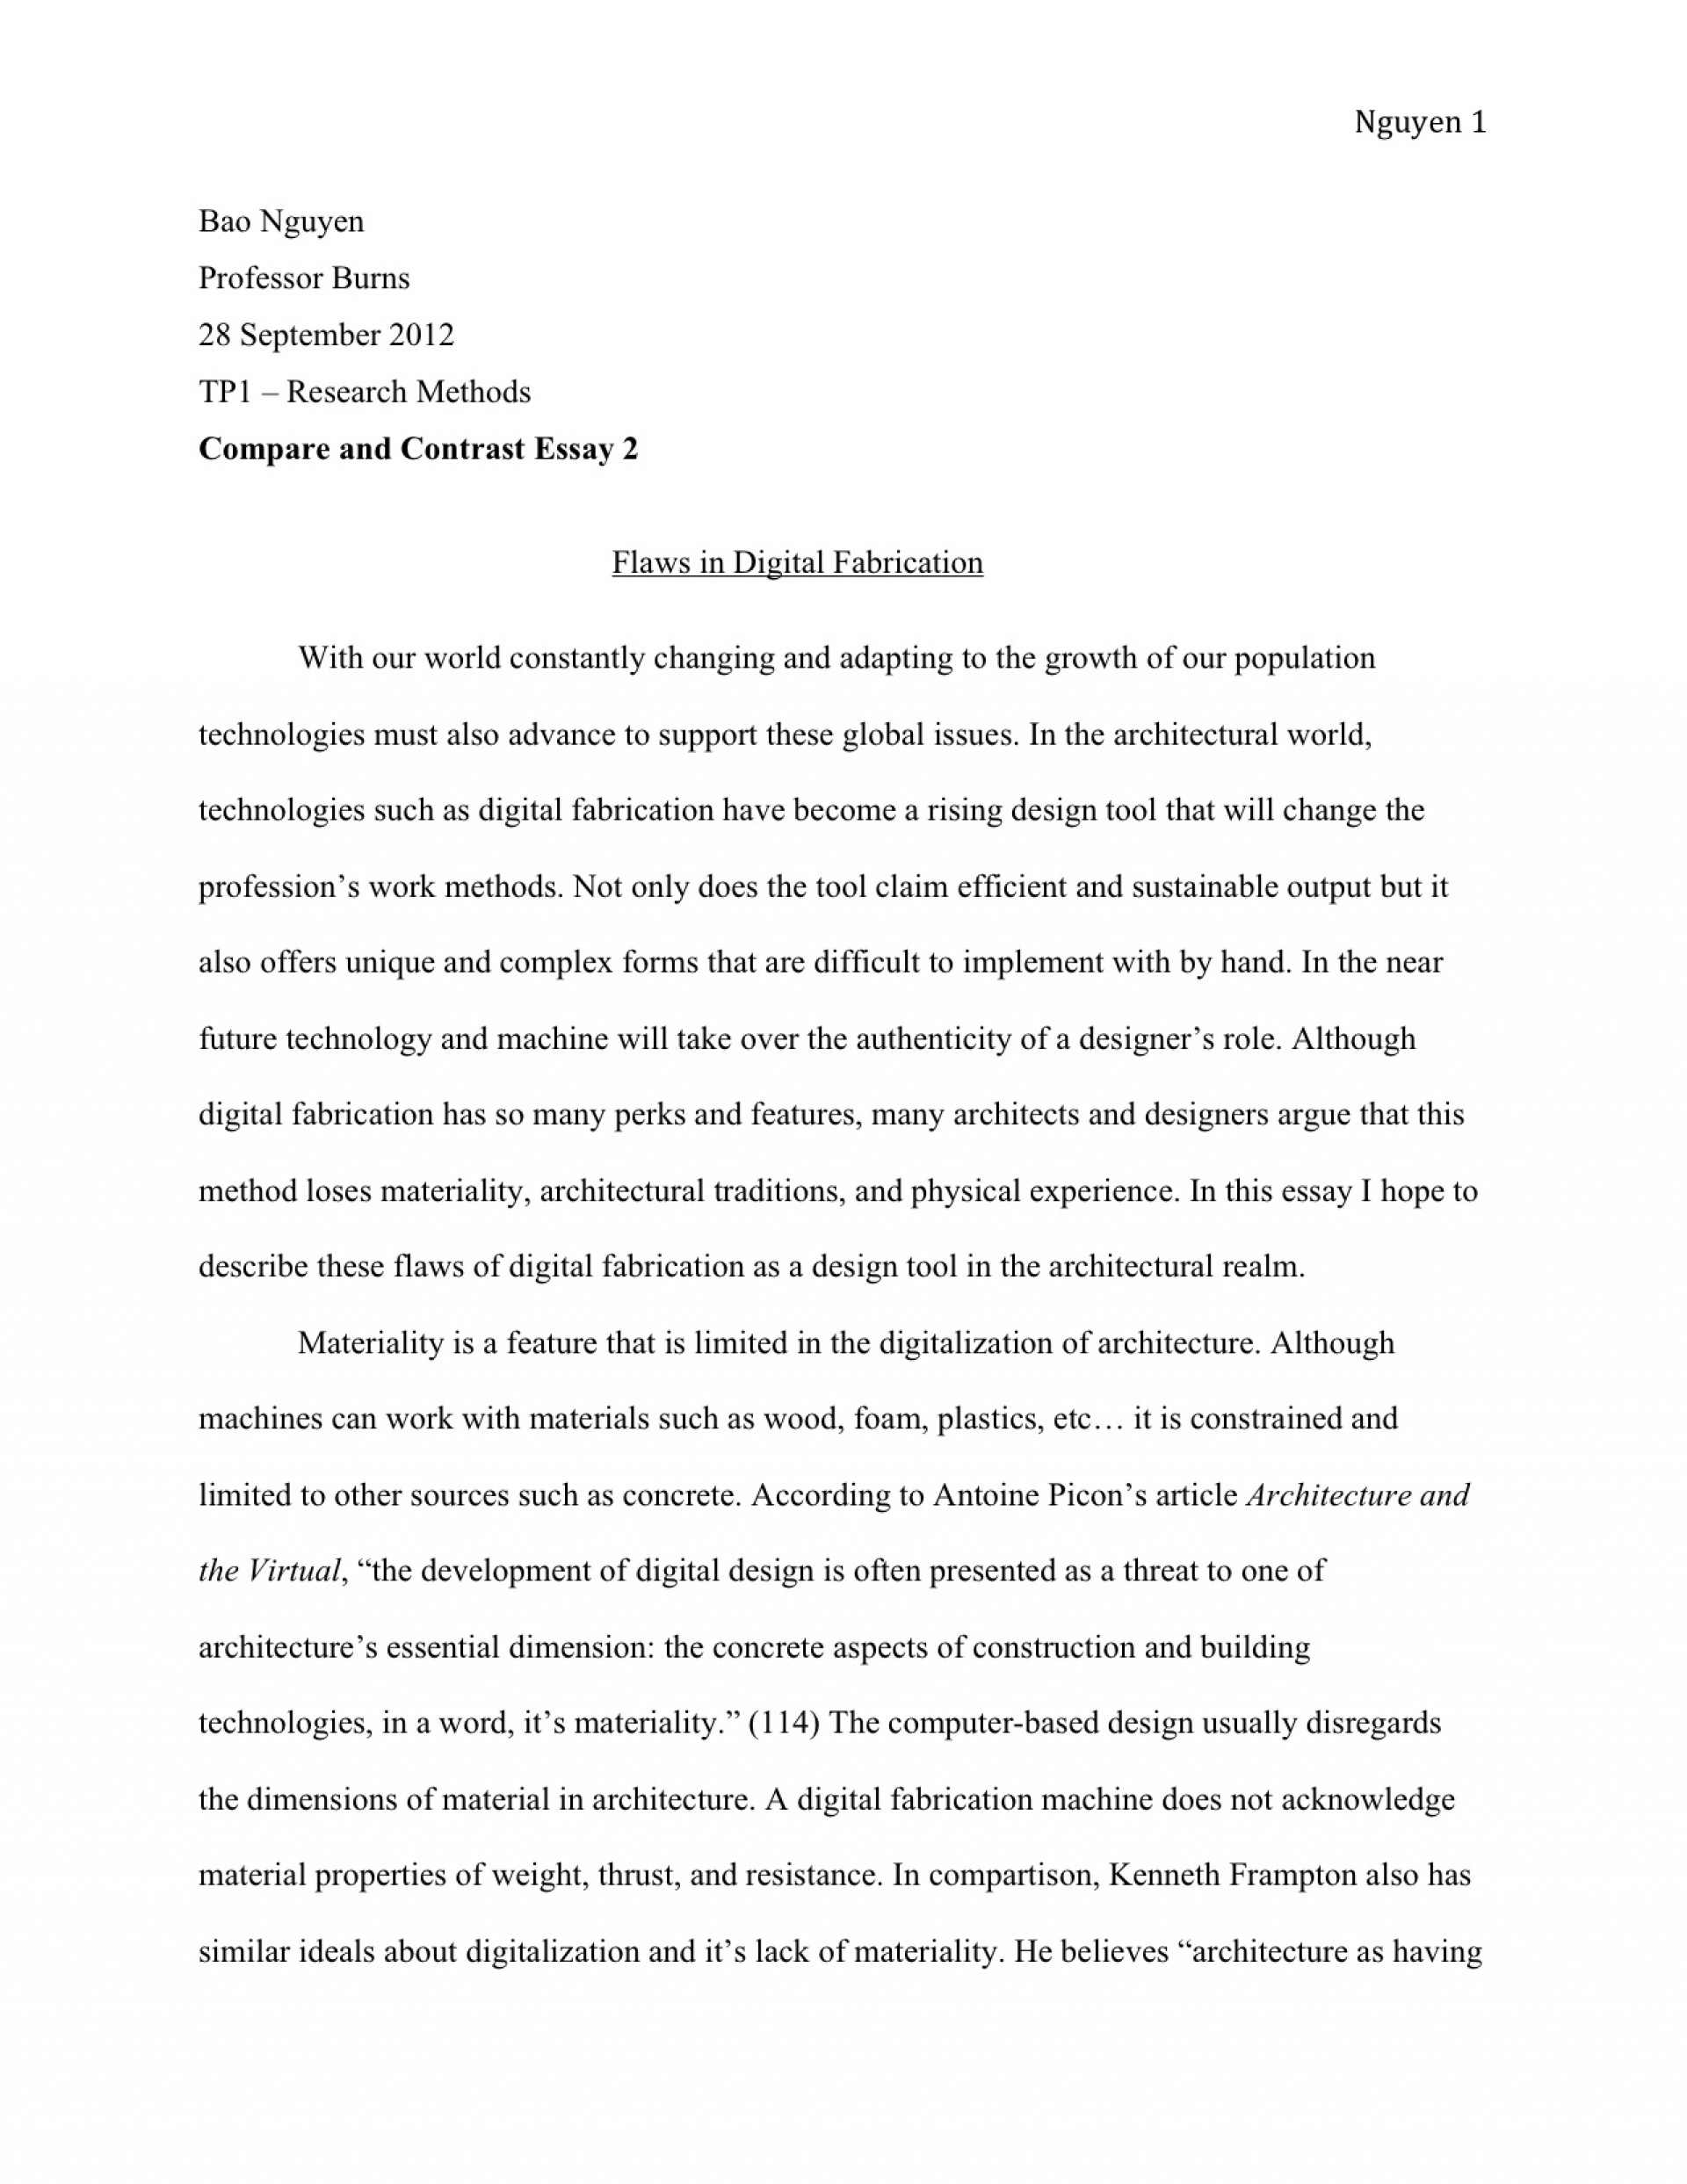 002 Tp1 3 Essay Example How Do You Write Unbelievable A Persuasive For Middle School To Paper In Mla Format On Word Microsoft 2010 1920